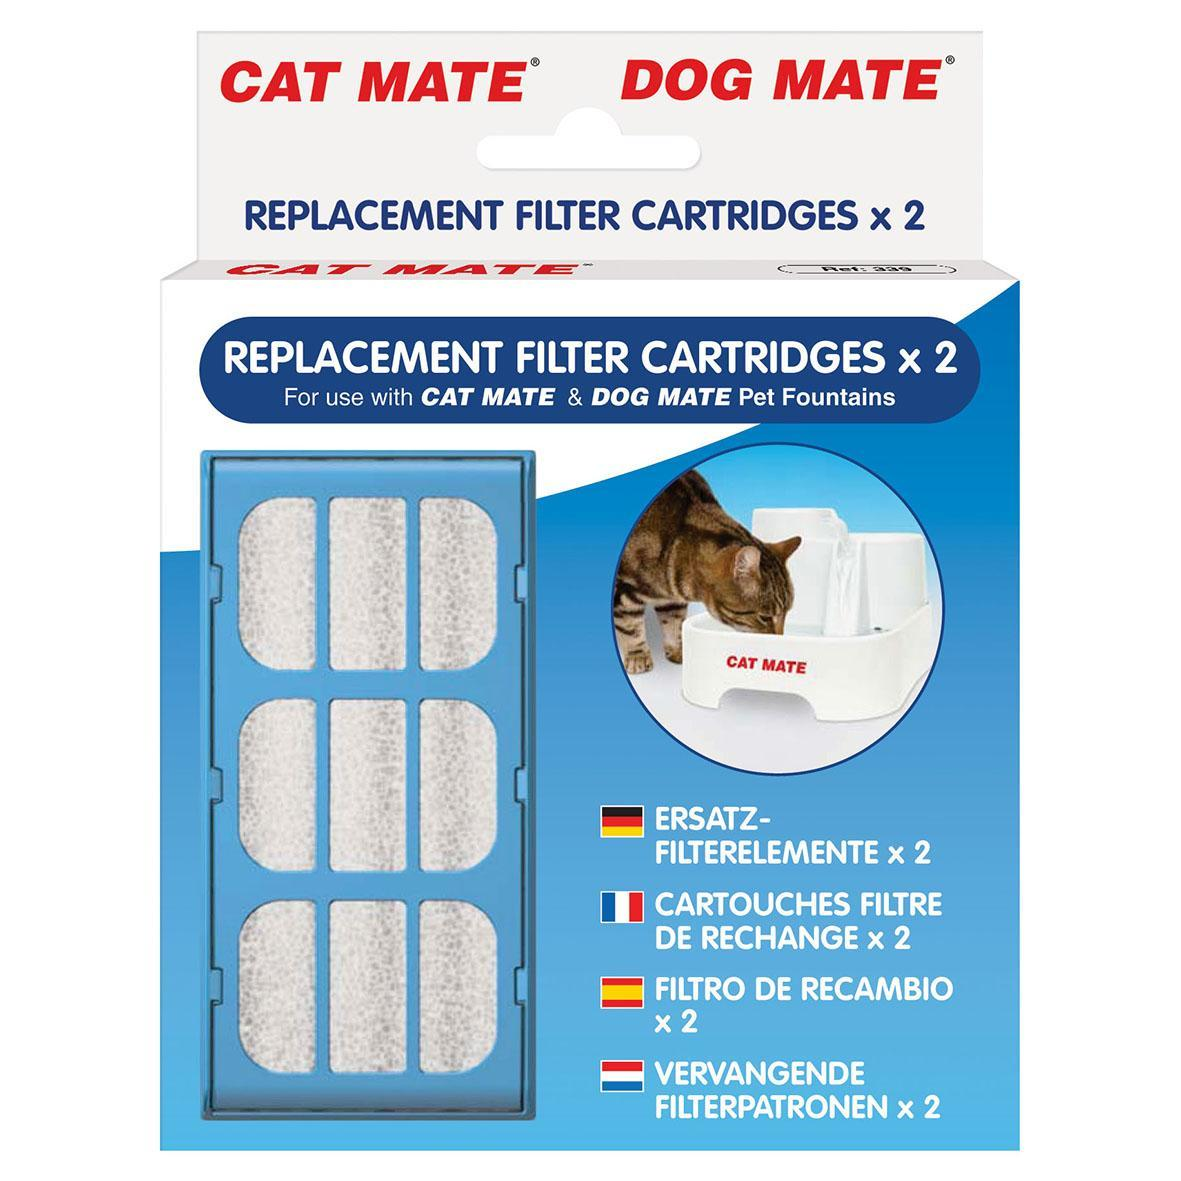 Cat Mate & Dog Mate Fountain Filter Cartridges